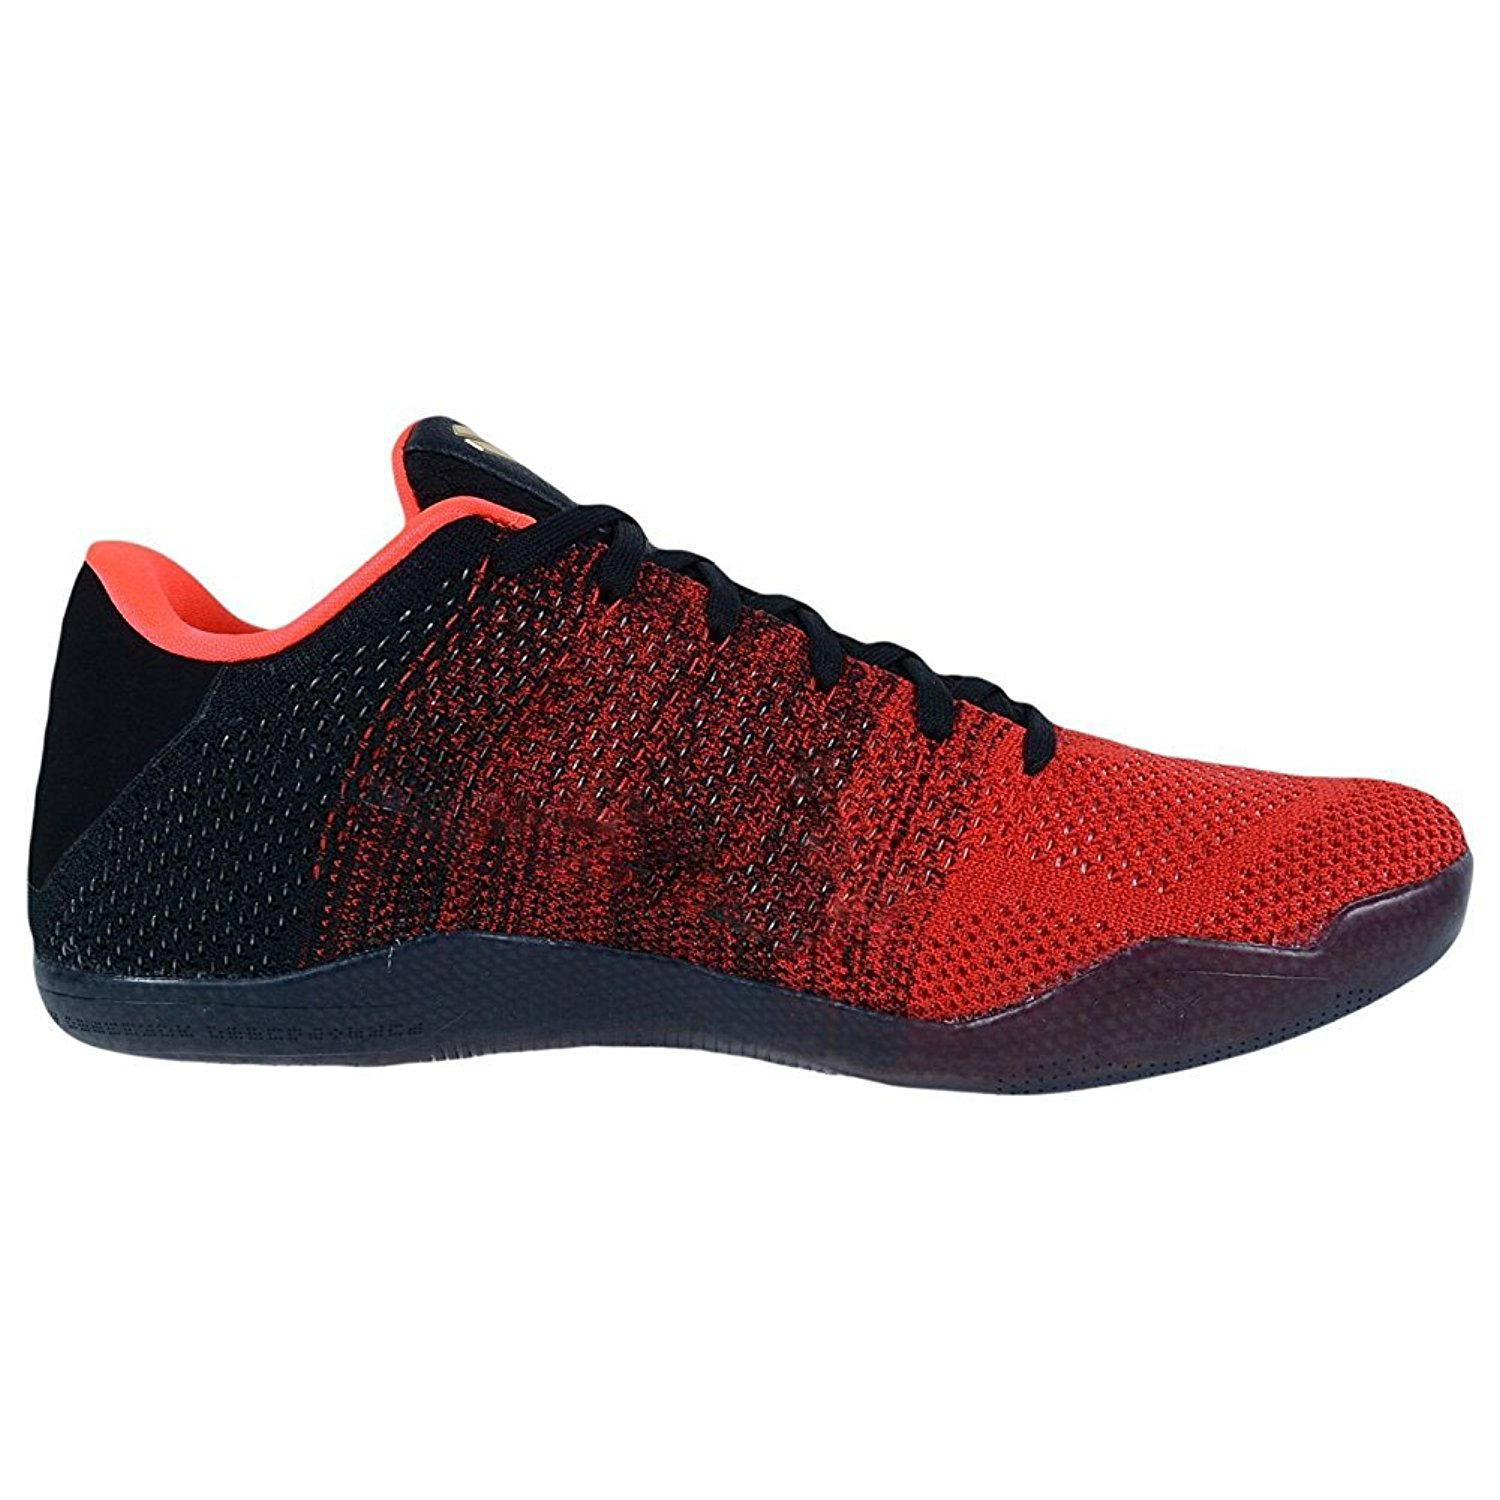 super popular 682f3 d15f1 Get Quotations · Kobe 11 Elite Low FTB